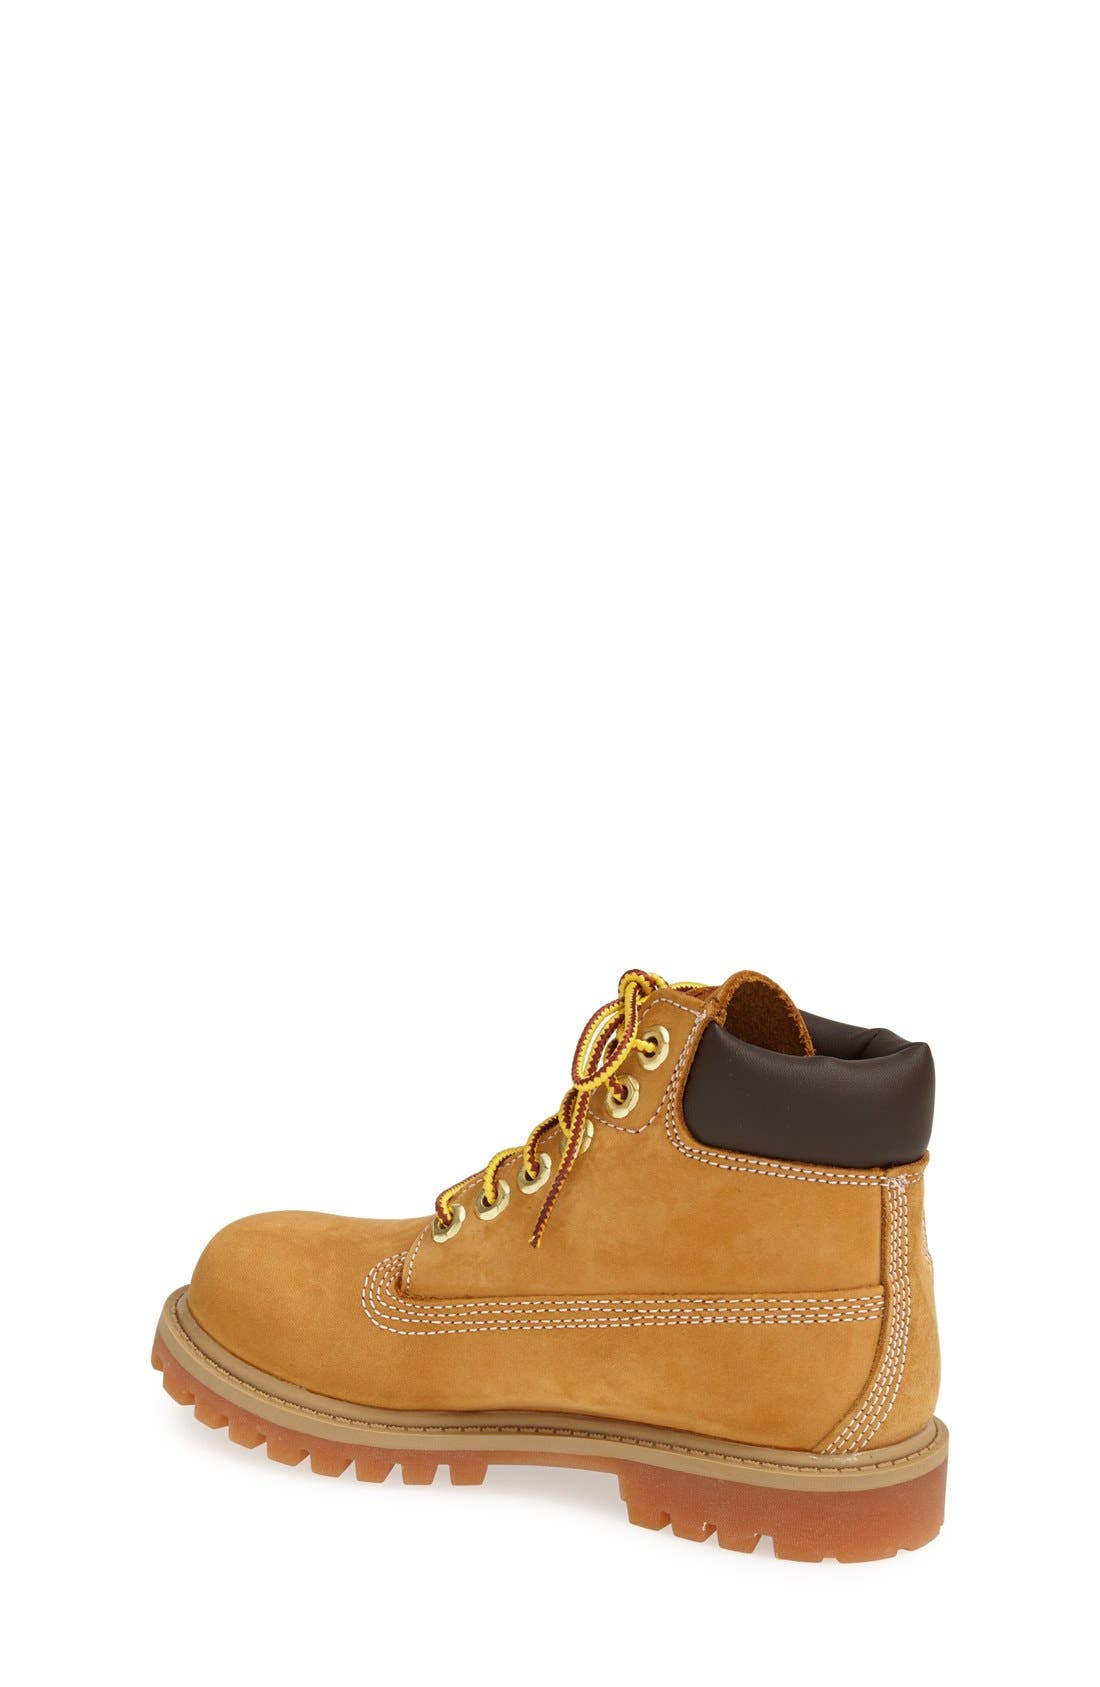 Alternate Image 2  - Timberland '6 Inch Premium' Waterproof Boot (Toddler, Little Kid & Big Kid)